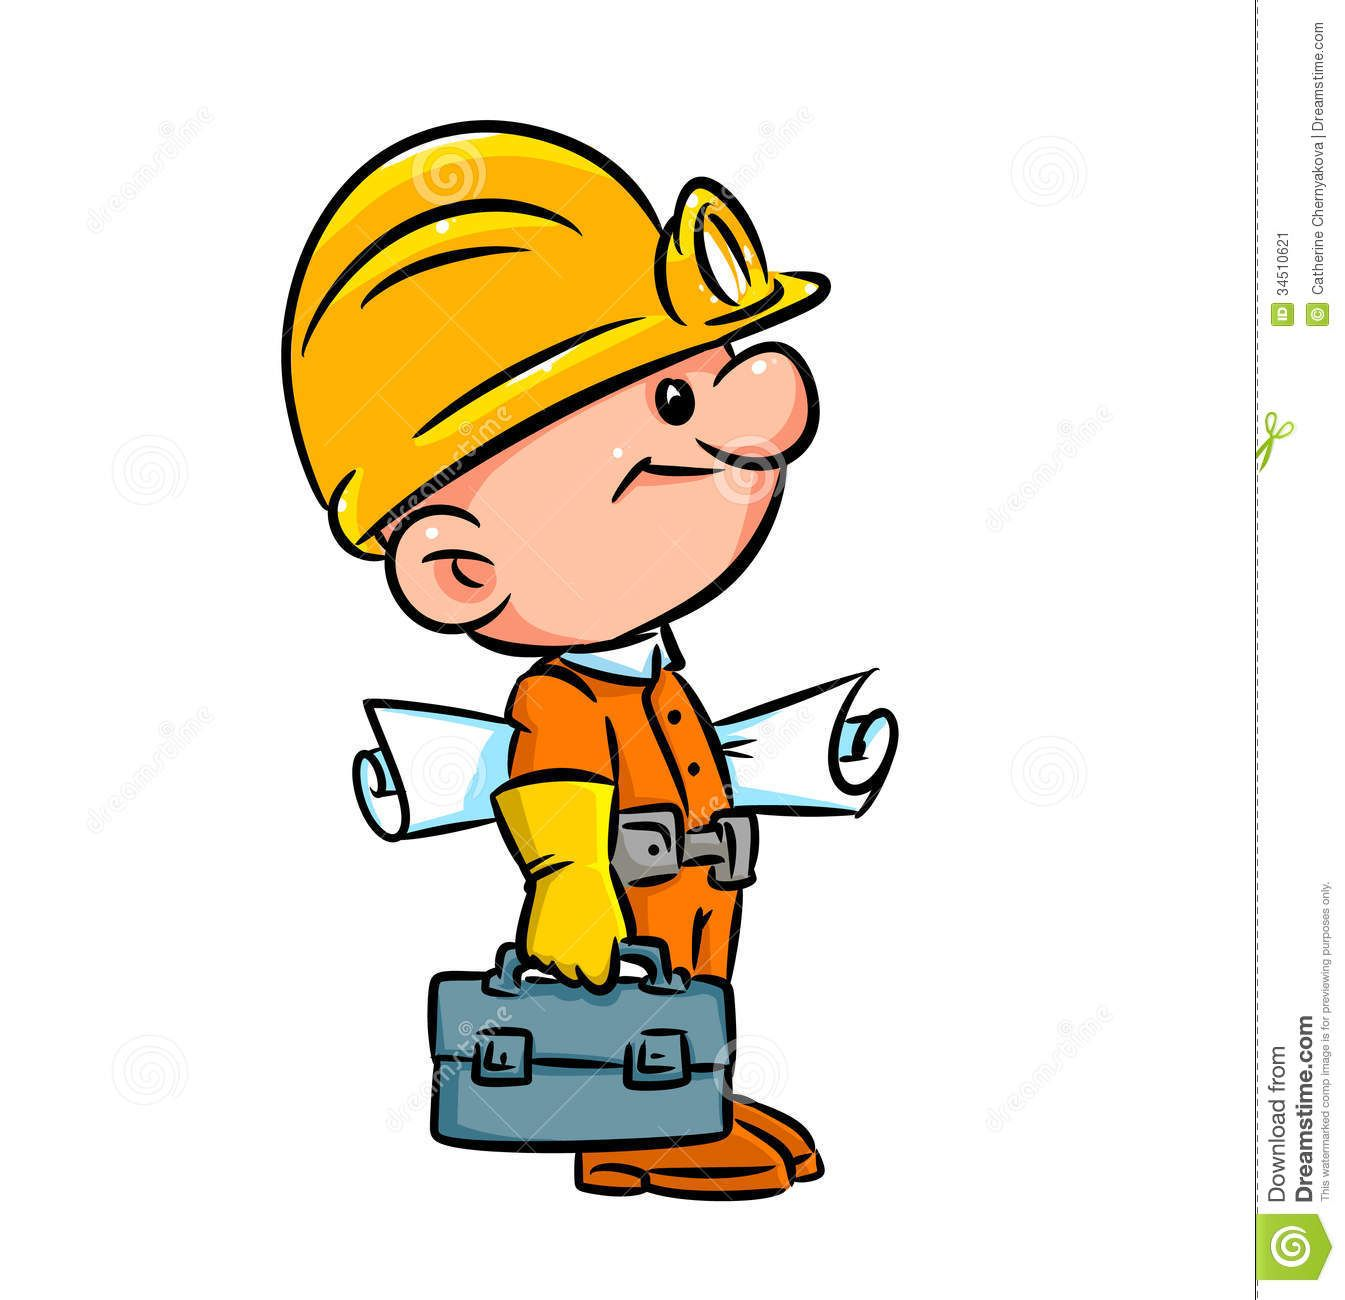 Planning Engineer Cartoon Clip Art